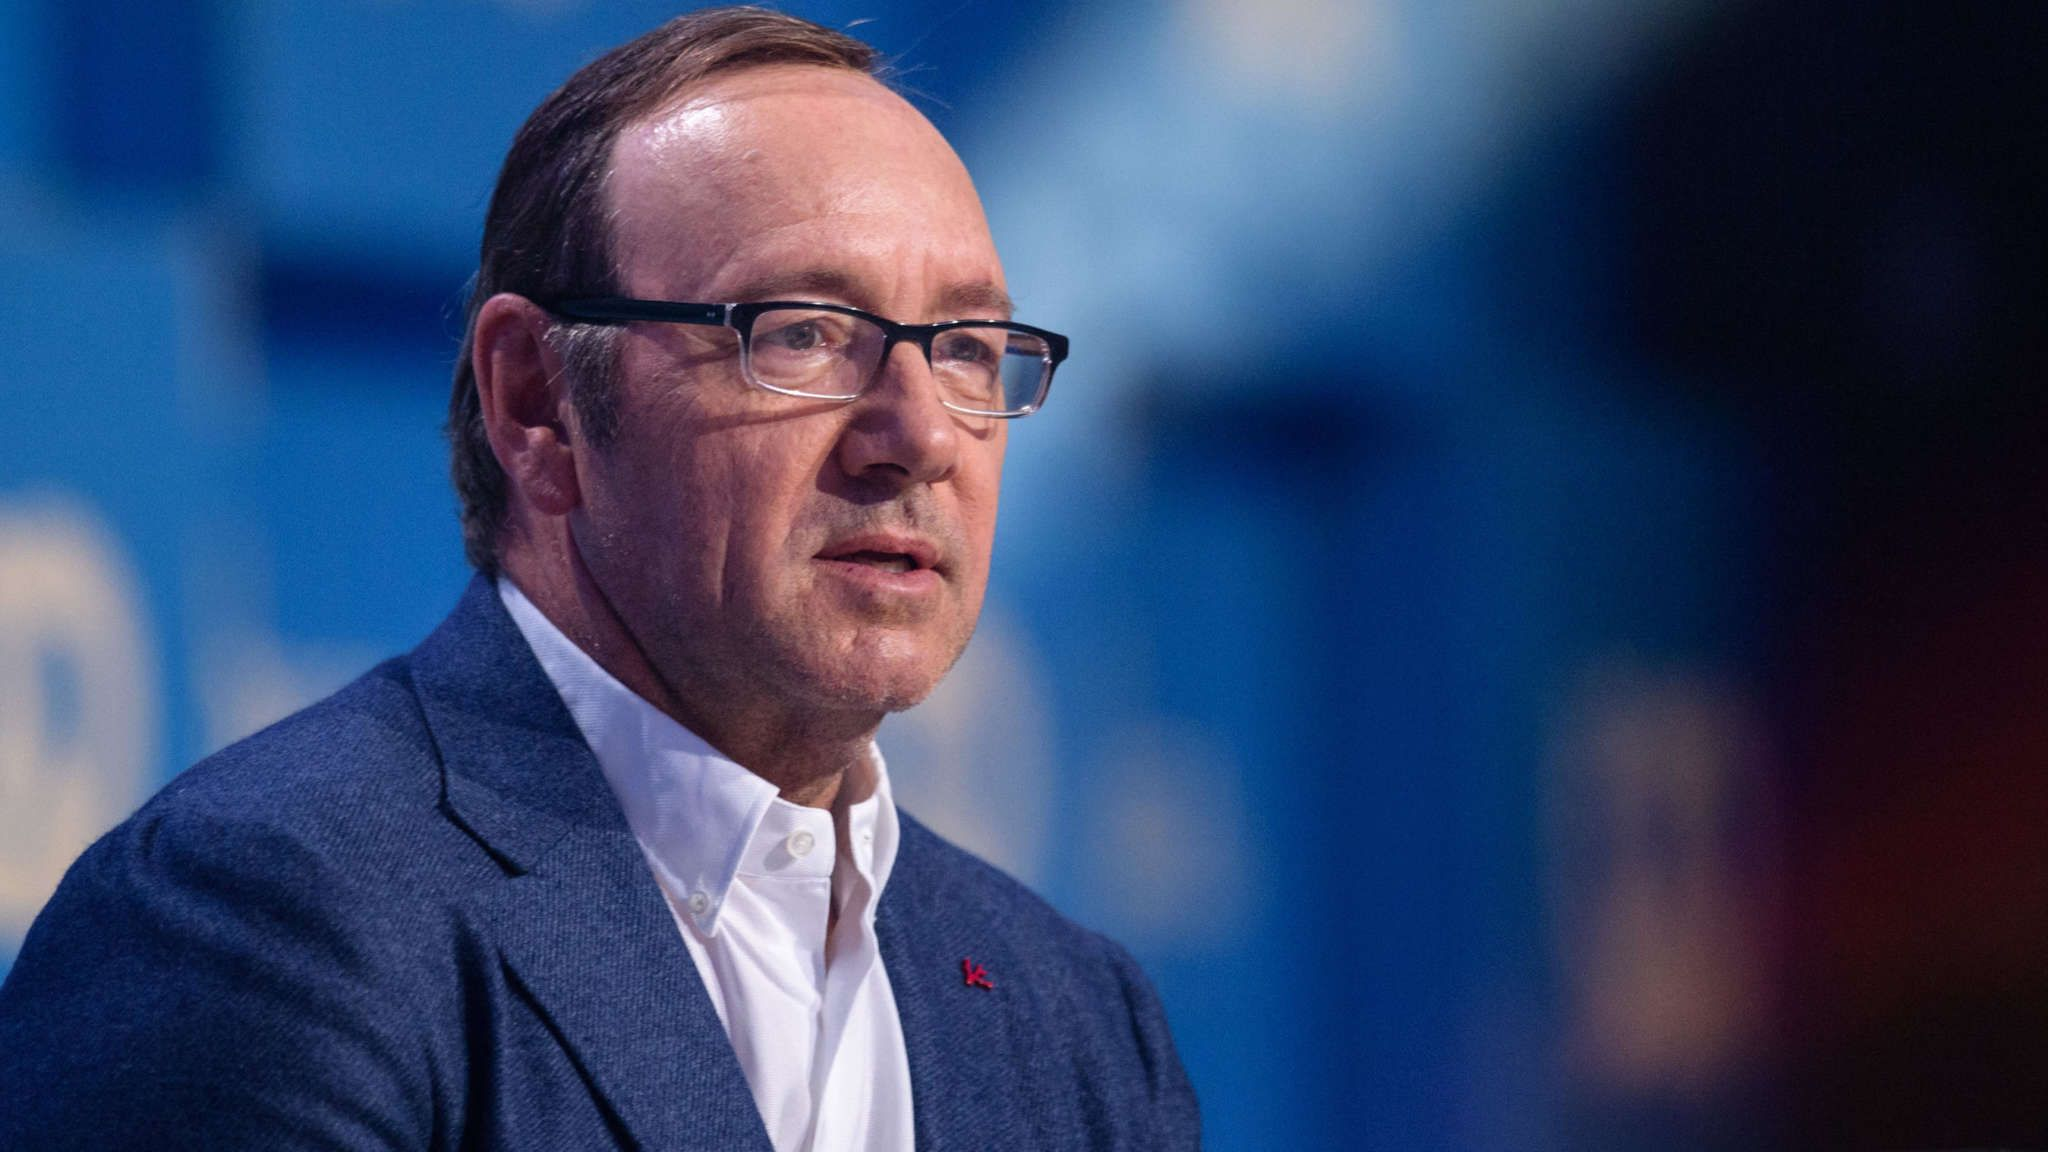 Kevin Spacey's Brother Made a Shocking Claim: His 'Nazi' Father Raped Him And He Was Desperate To Protect Kevin From The Same Harm #KevinSpacey, #RandallFowler celebrityinsider.org #Entertainment #celebrityinsider #celebritynews #celebrities #celebrity